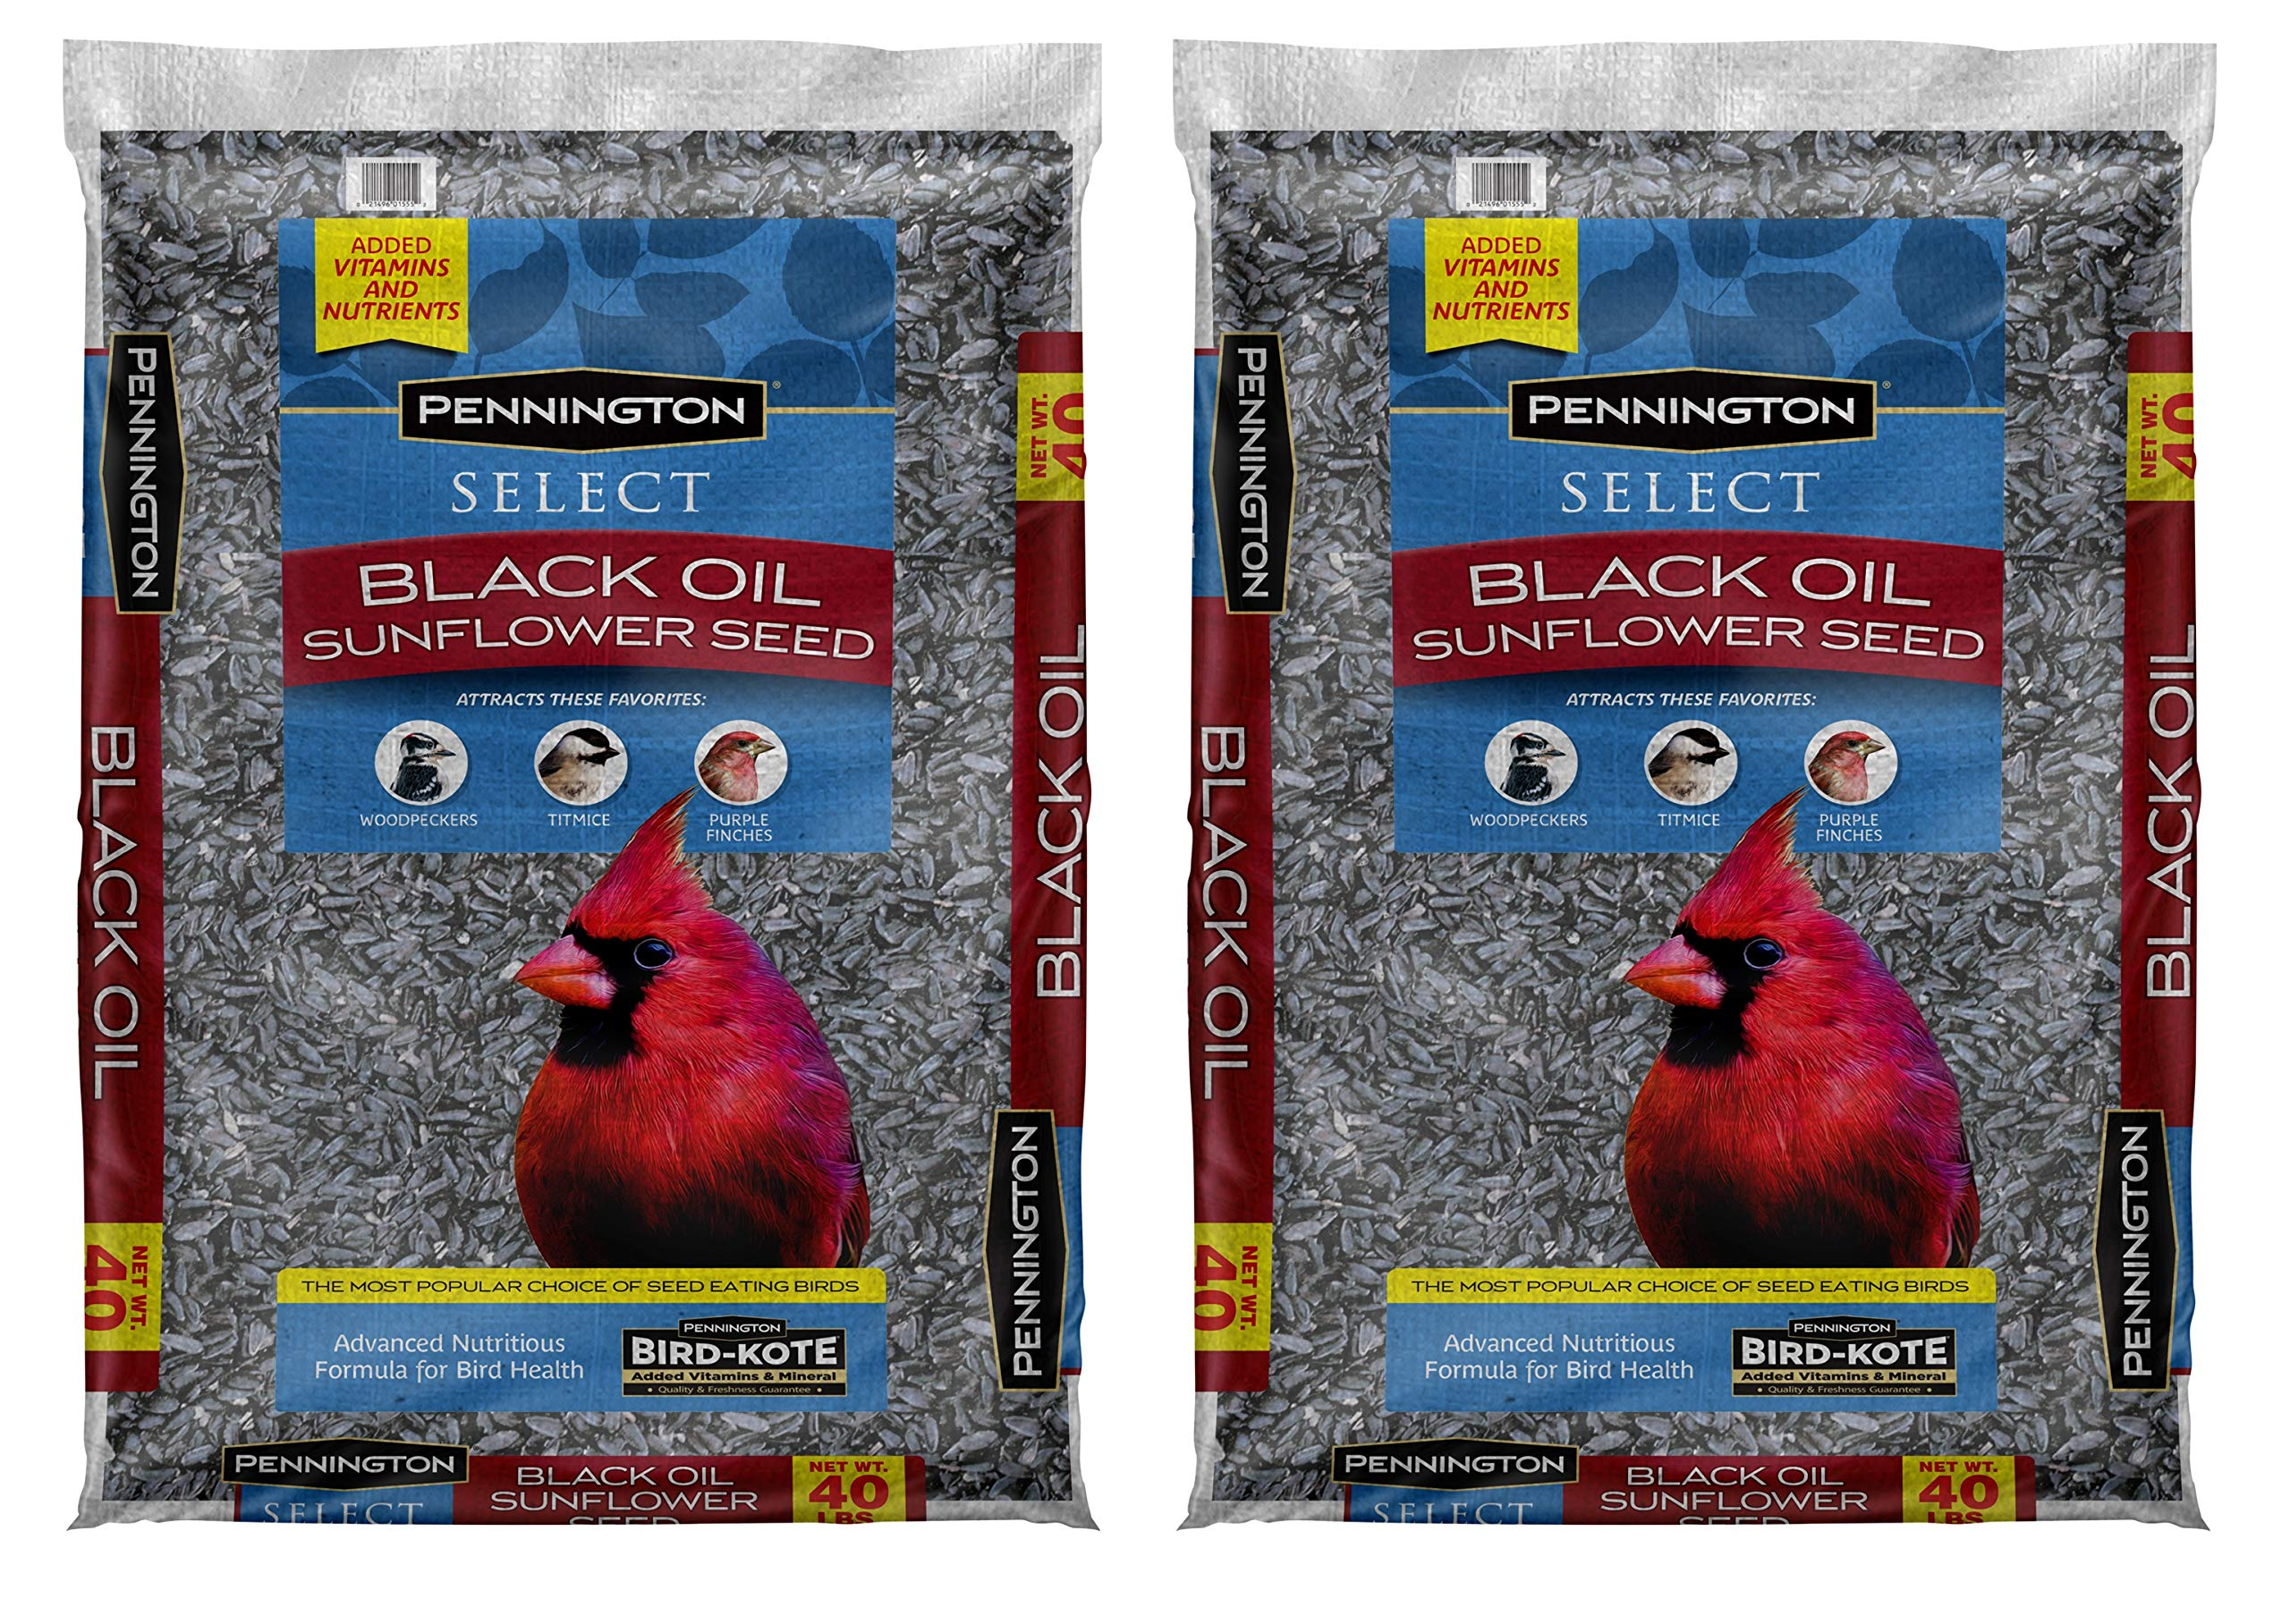 Pennington Select Black Oil Sunflower Seed Wild Bird Seed Feed, 40 Lbs (Pack of 2) Made in USA